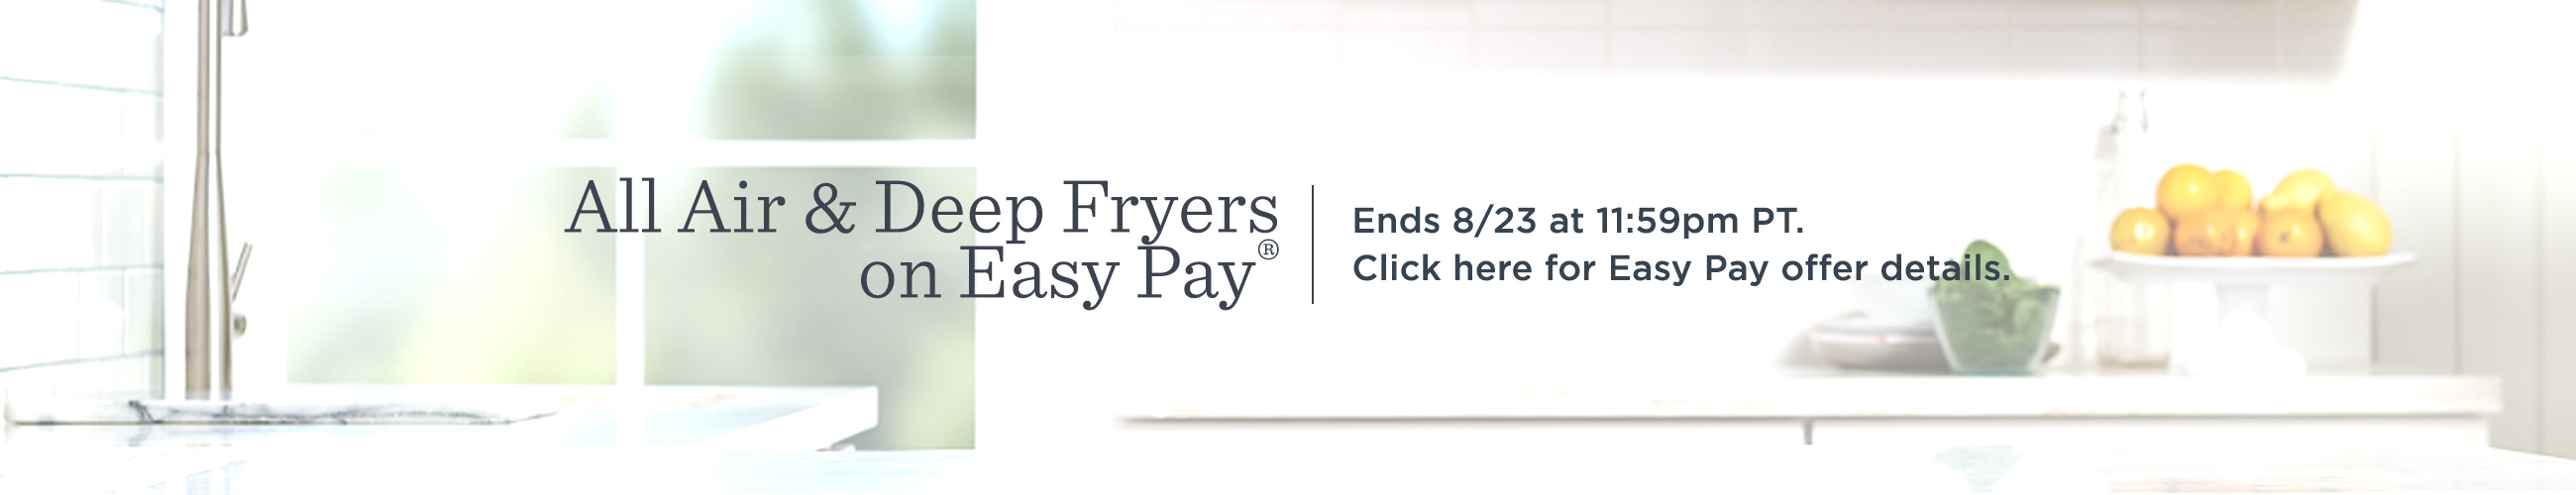 All Air & Deep Fryers on Easy Pay®  Ends 8/23 at 11:59pm PT.  Click here for Easy Pay offer details.